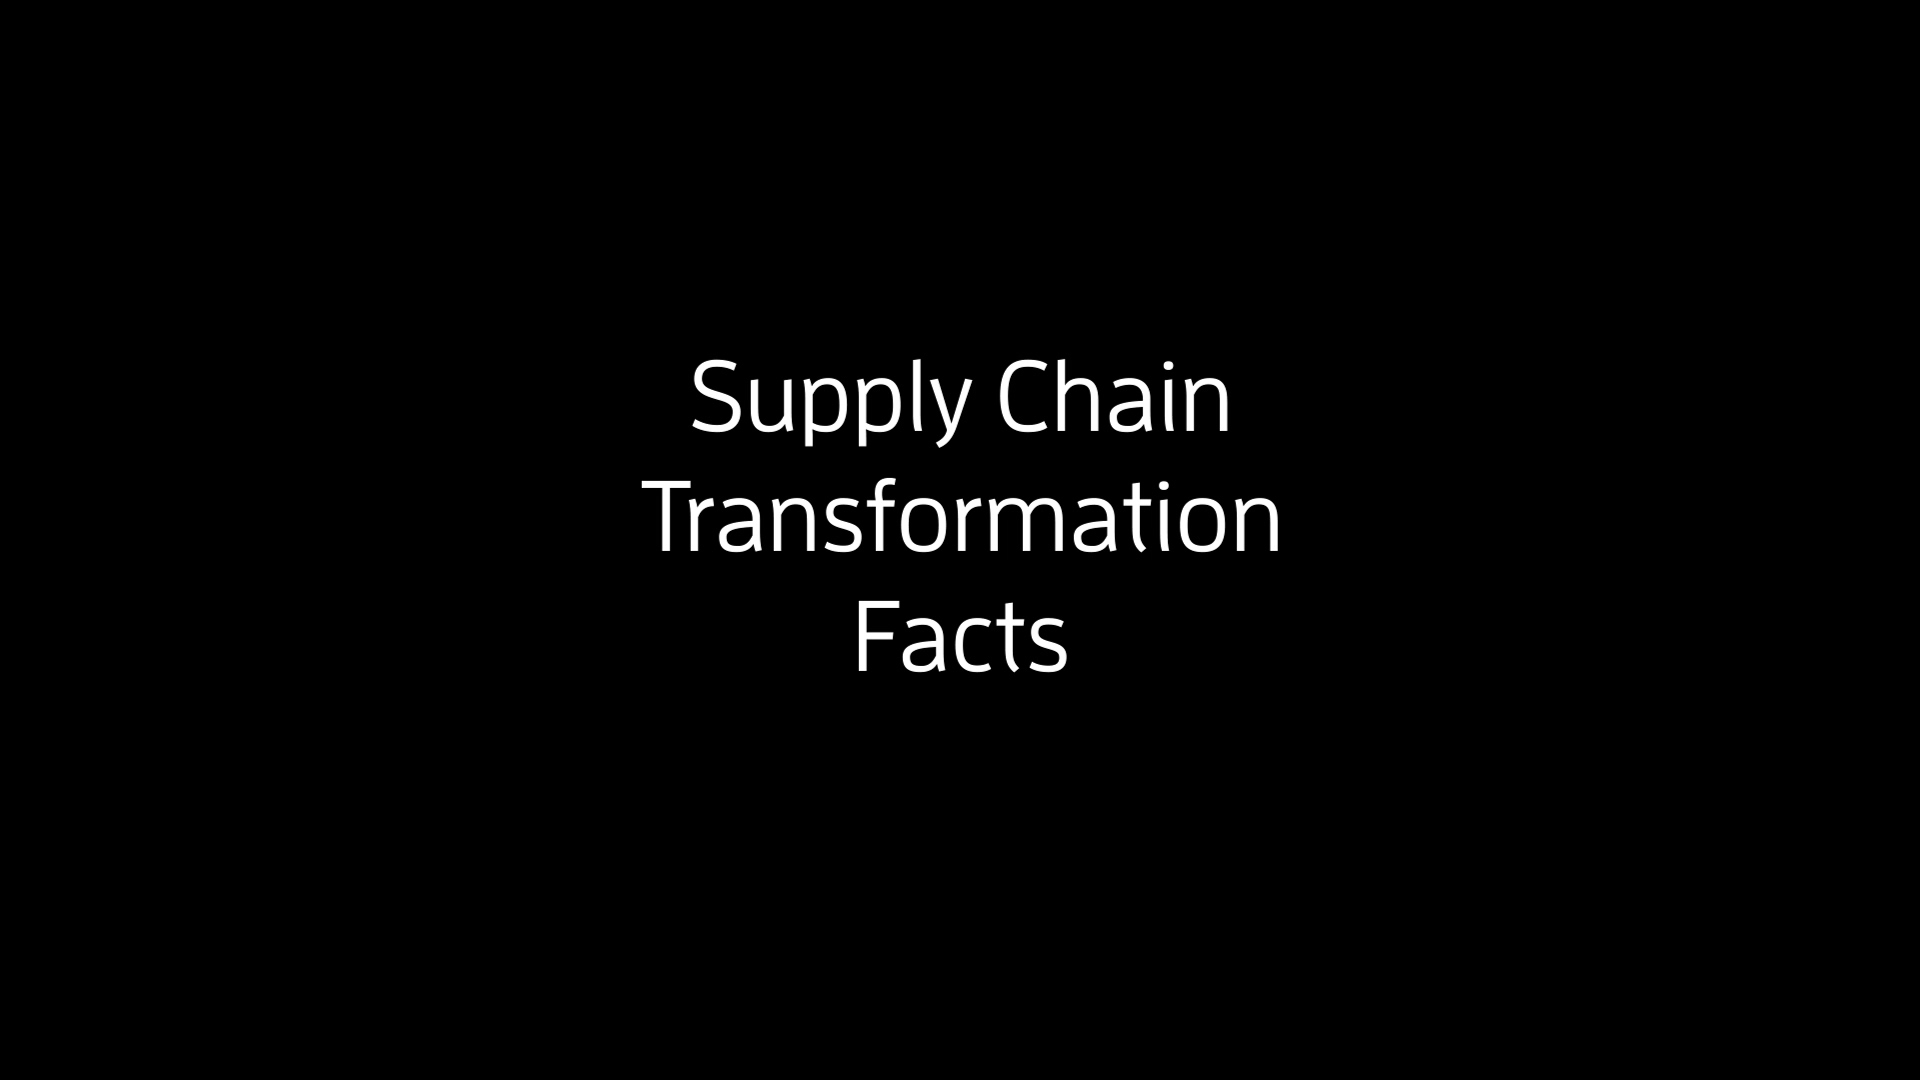 Digital Transformation of Supply Chains - Supply Chain Transformation Facts